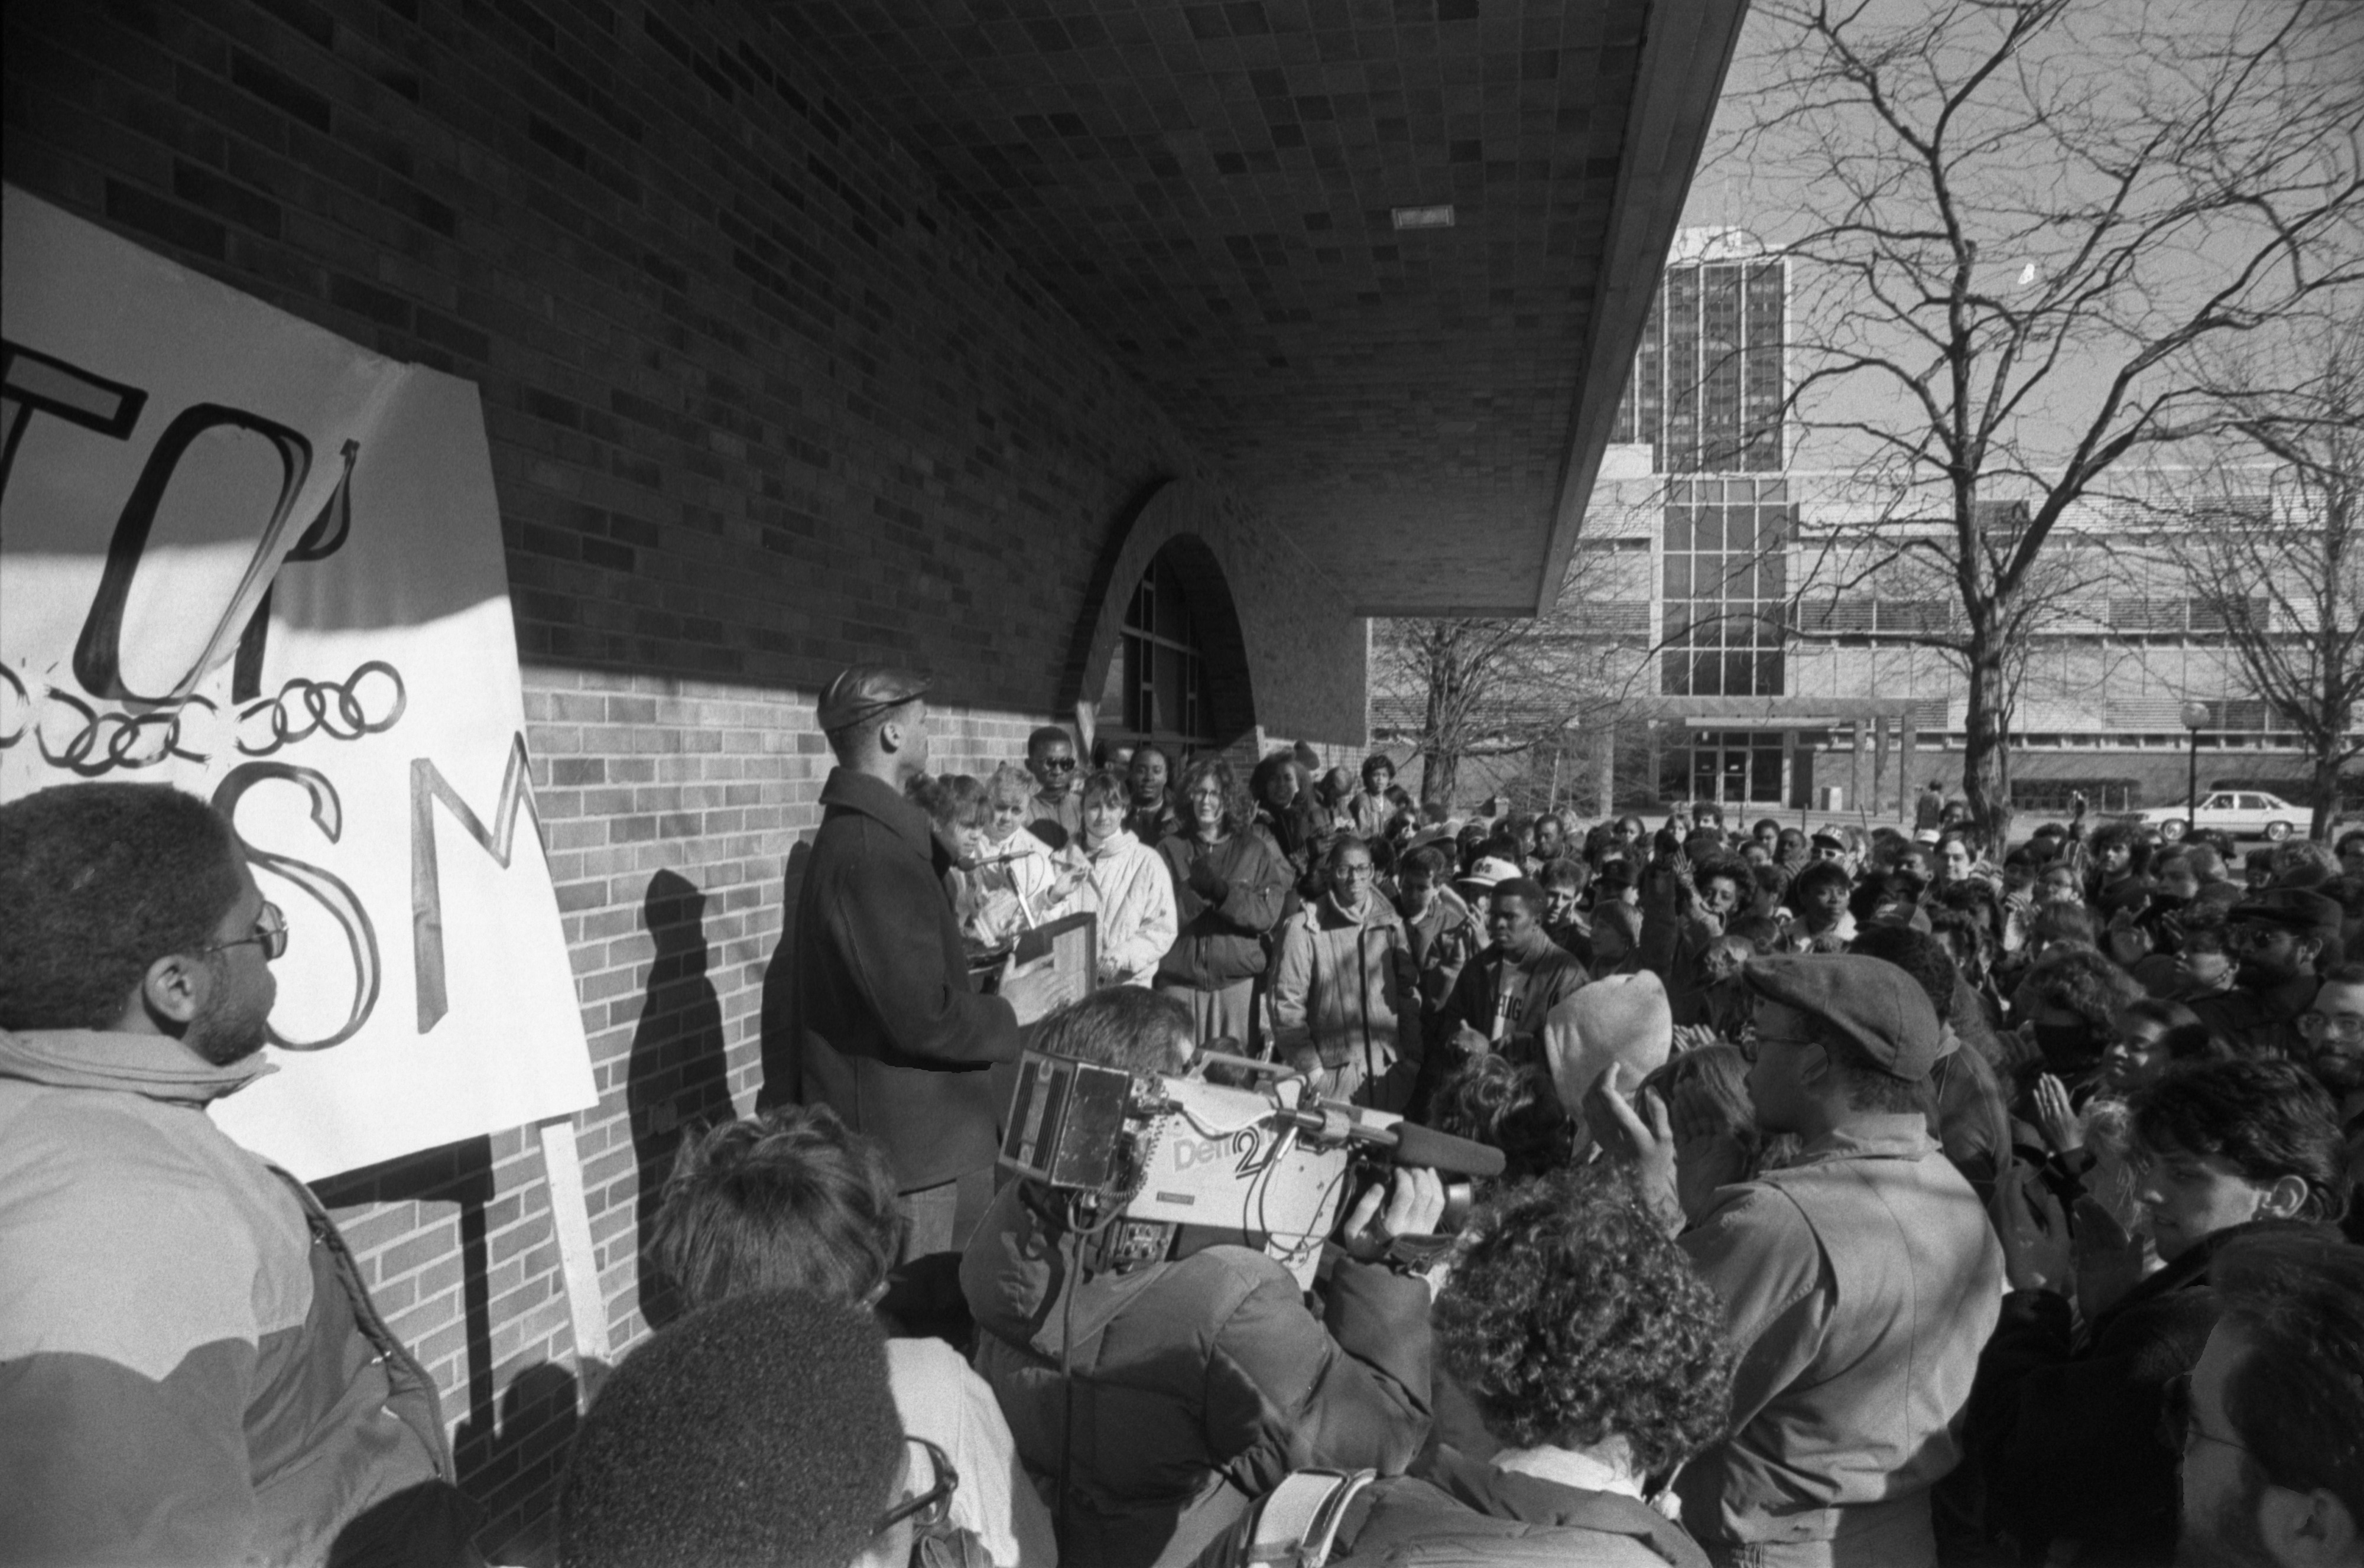 Image from Black Action Movement Protesters Outside UM Administration Building, March 20, 1987